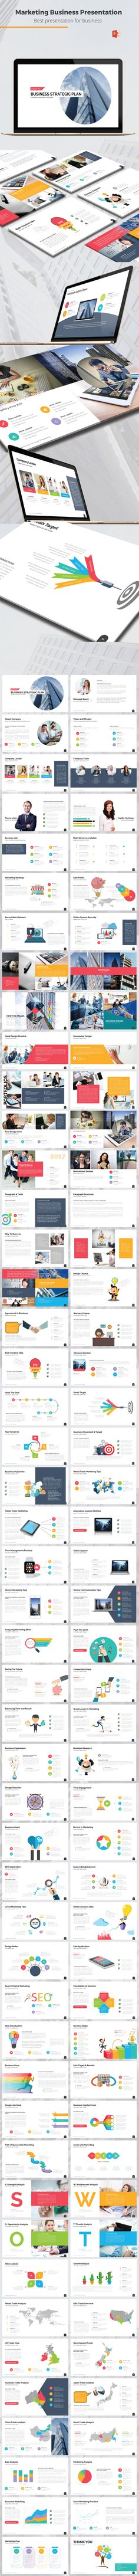 Marketing Business Presentation — Powerpoint PPT #diagram #presentation template • Download ➝ https://graphicriver.net/item/marketing-business-presentation/19235454?ref=pxcr